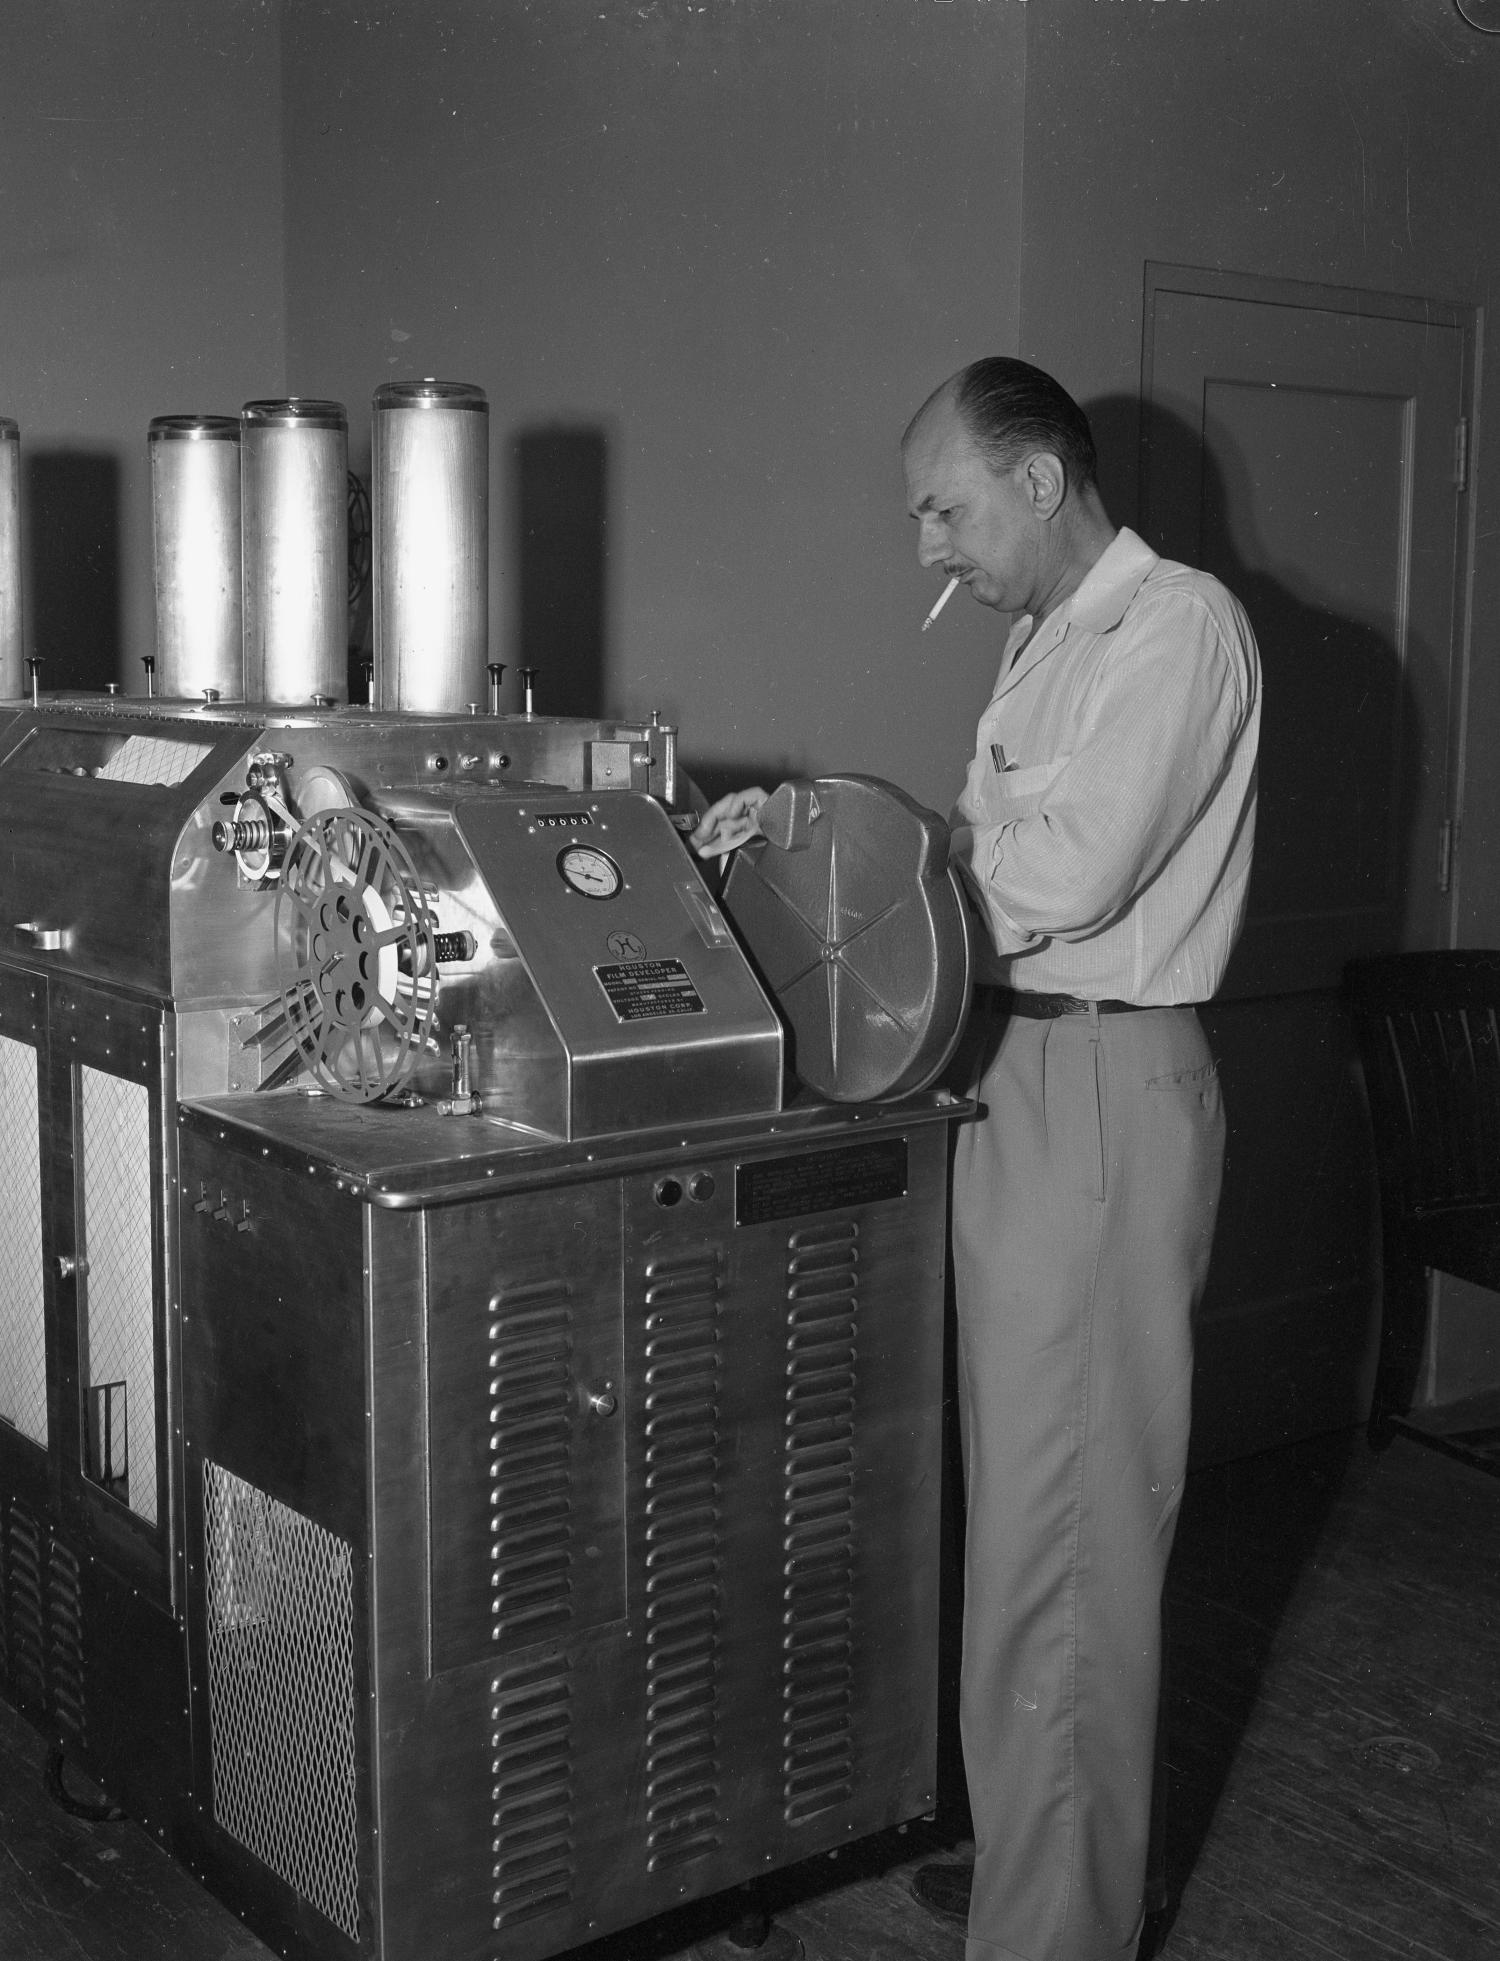 [Film-Dept.- McClough and Saunders - Houston Mach and Printer], Photograph of Houston Mach standing beside a printer.,